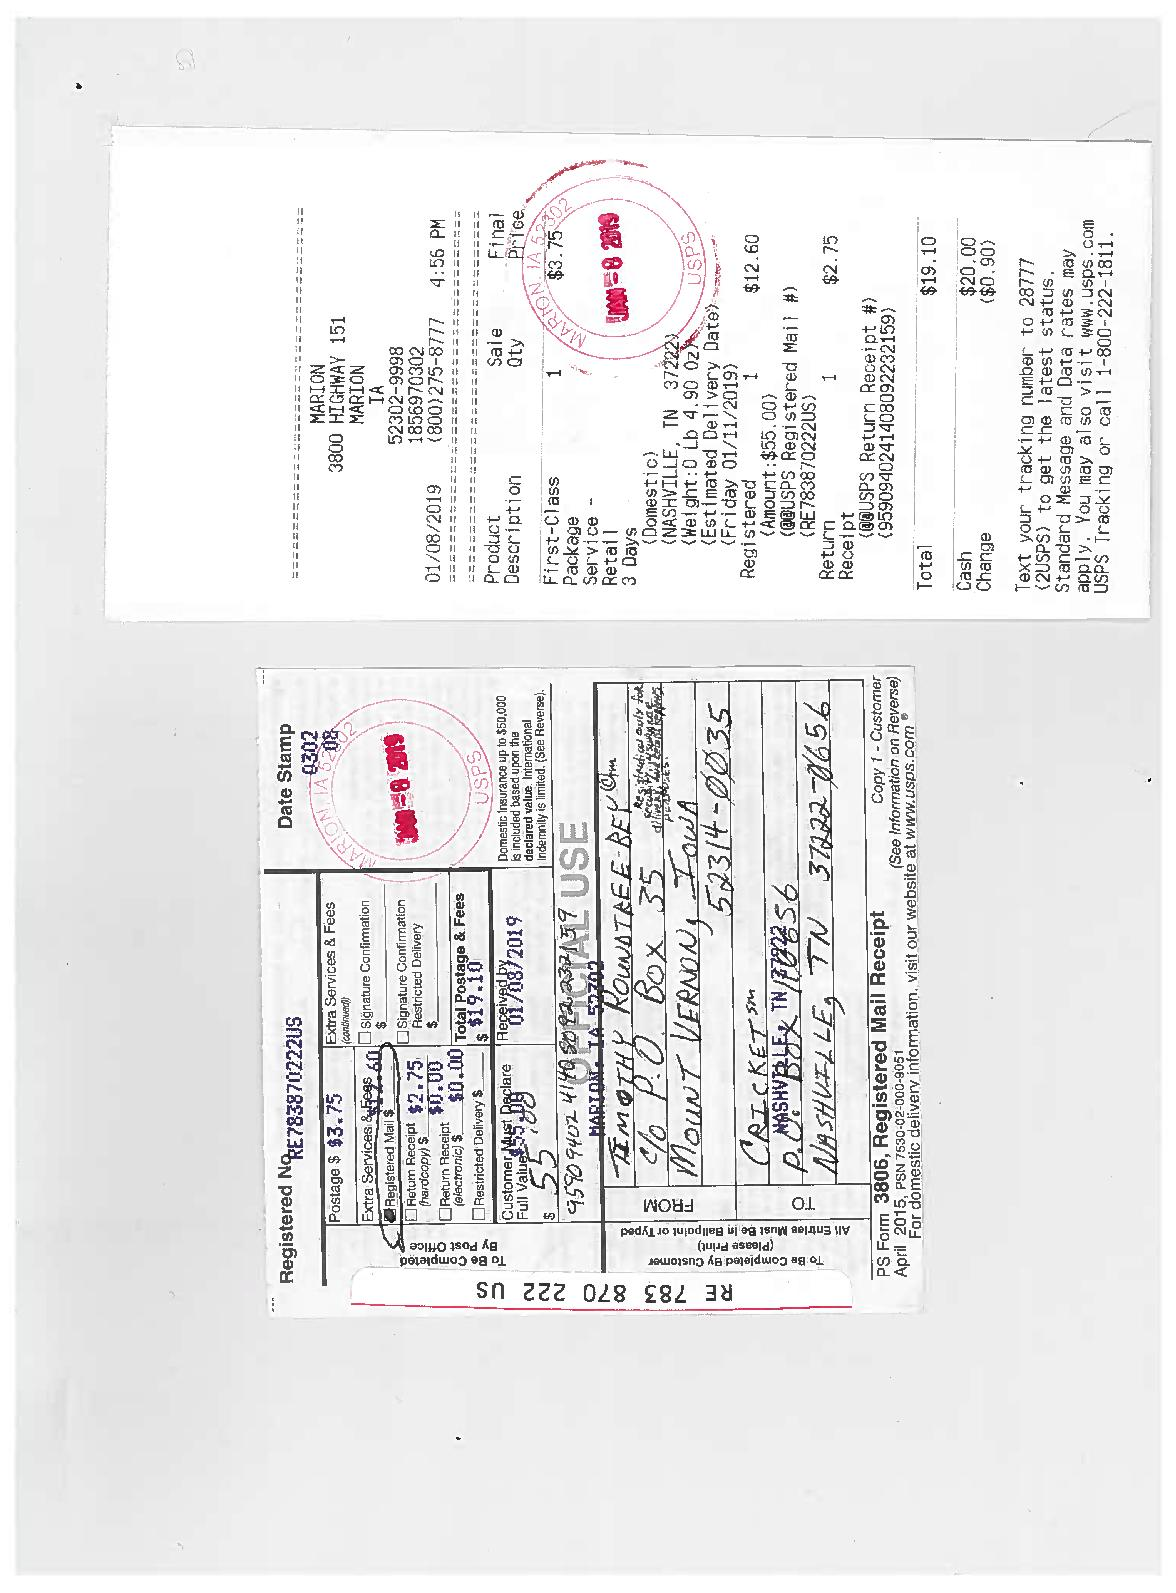 Calameo Registered Mail Re 783 870 222 Us Sent To